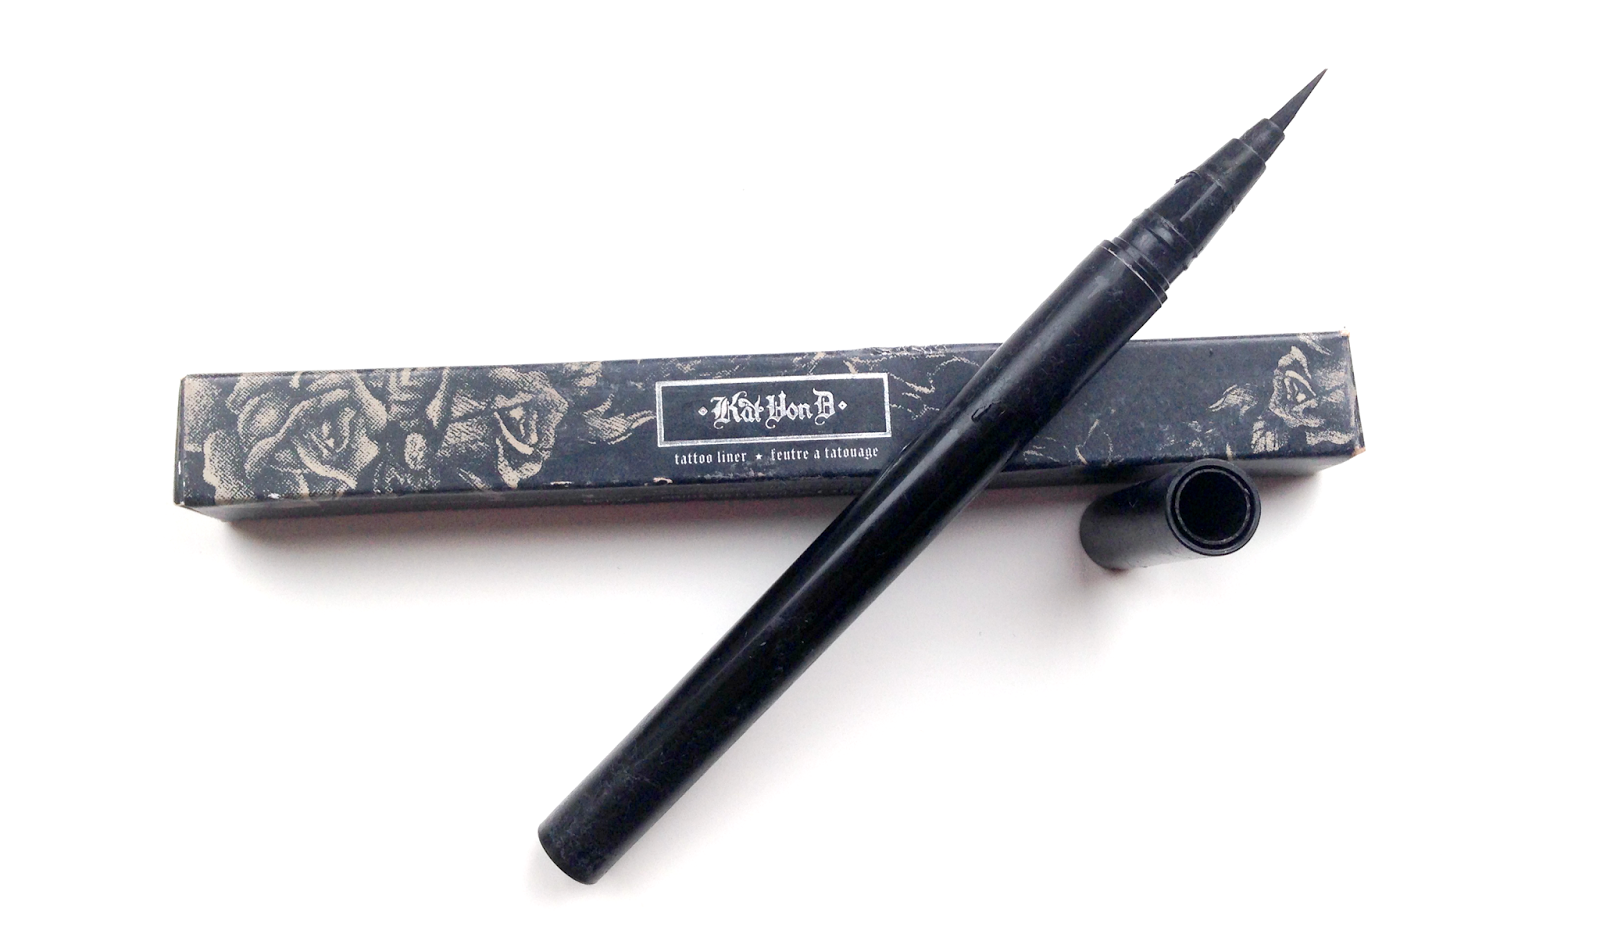 Kat Von D Tattoo Liner Review   Leila Lina furthermore Kat Von D Tattoo Liner Review   Swatches   Makeup   Pinterest in addition Review  Kat Von D Tattoo Liner 'Trooper'   natashaparisblog further Kat Von D Tattoo Liner   Long Eyeliner Pen   Kat Von D as well Kat Von D Eyeliners Created With Tattoo Liner And Ink Liner In moreover Stila Stay All Day Liquid Eyeliner vs Kat Von D Tattoo Liner in addition Kat Von D Tattoo Liner in Trooper   Swatches   Review   XO  Noelle additionally Be Linspired  Kat Von D Tattoo Liner   Review in addition DUPE ALERT   Kat von d  S les and Cover also Kat Von D Tattoo Liner Review   Swatches in addition Kat Von D Tattoo Liner   beaute fabuleuse. on kat von d tattoo eyeliner